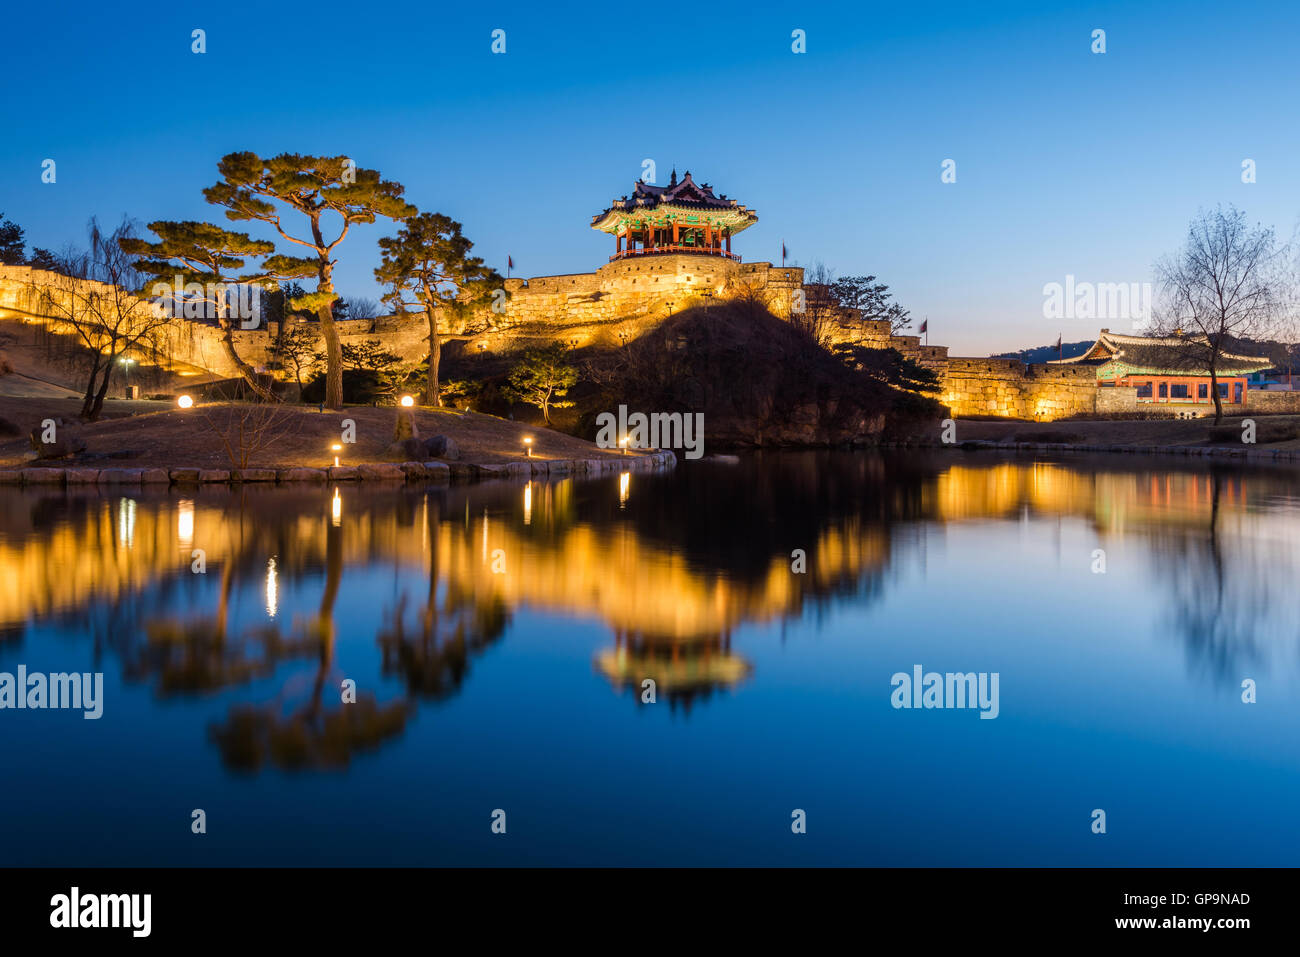 Hwaseong Fortress, Traditional Architecture of Korea in Suwon at Night, South Korea. - Stock Image